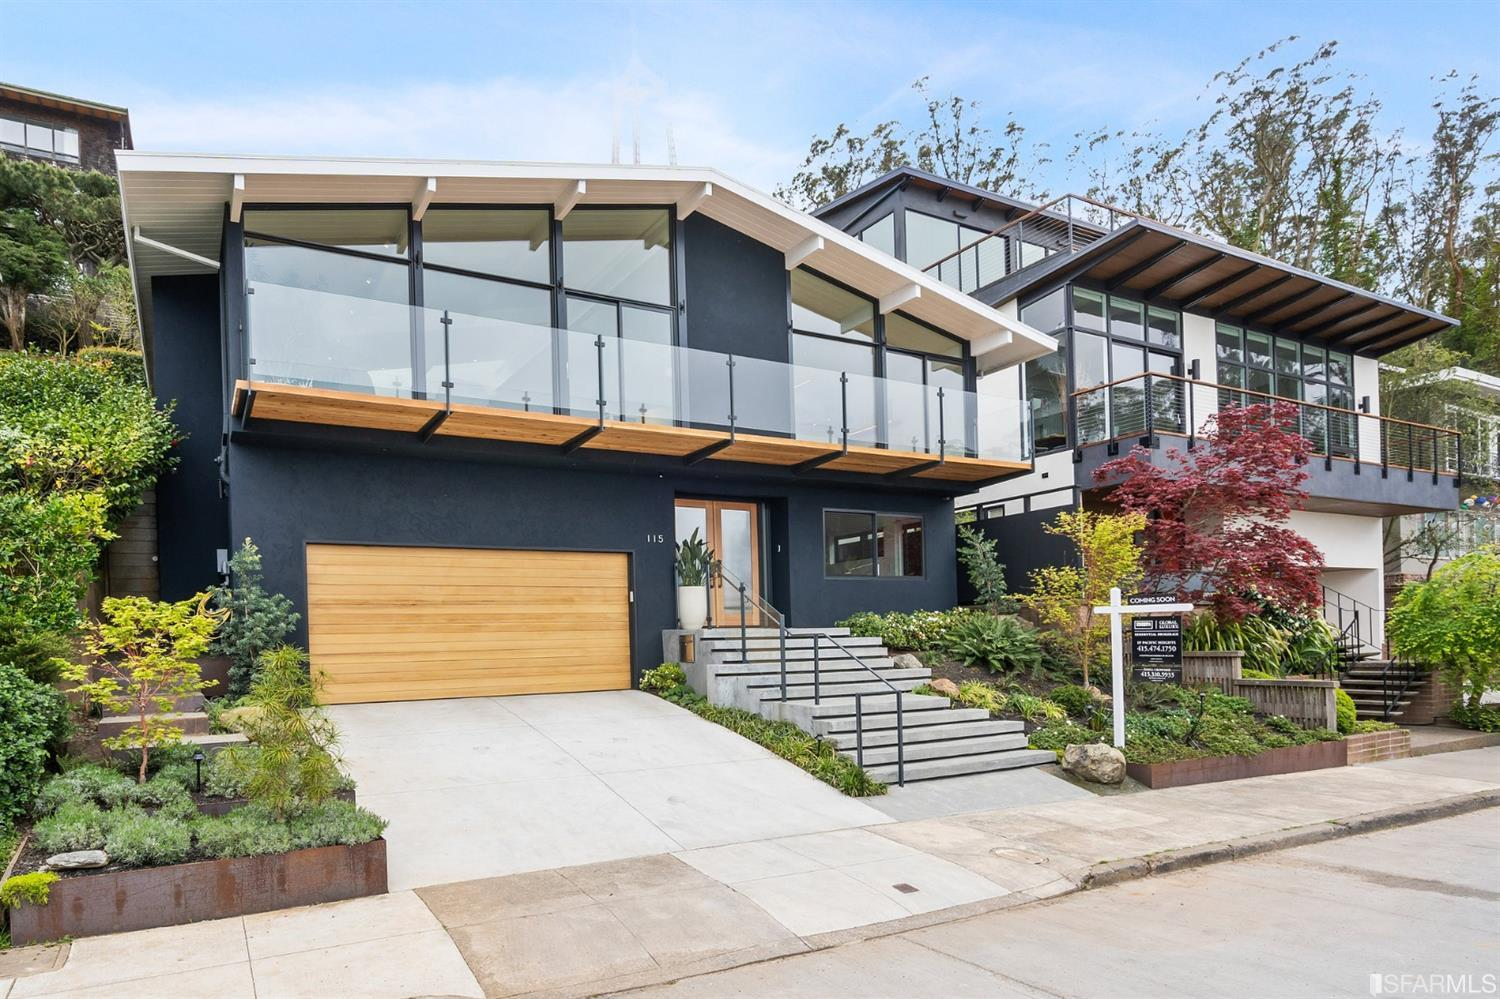 Modern 3BR/3.5BA detached, extensively renovated residence enjoys sweeping views, across the full width of the home, from the Golden Gate to downtown and beyond. A spacious and light great room with vaulted ceilings and skylights accesses the cantilevered front deck thru floor-to-ceiling tall sliding glass doors. Features include entertainment center, woodburning fireplace + gas starter, built-ins, hardwood floors. Gourmet kitchen includes Miele appliances, butler's pantry, long work island. Up a split level is the powder room and two suites, one with walk-in closet. Each bedroom opens to the landscaped rear patios, gardens, terraced outdoor entertainment and viewing platforms. See Napa on a clear day? Entry foyer, guest quarters/home office suite with views and laundry on the lower level. Interior access double garage. Smarthome systems, Lutron & A/V. Prewired for solar. Ideally situated on the serene city-facing eastern slope of Twin Peaks adjacent open space hiking & biking trails.